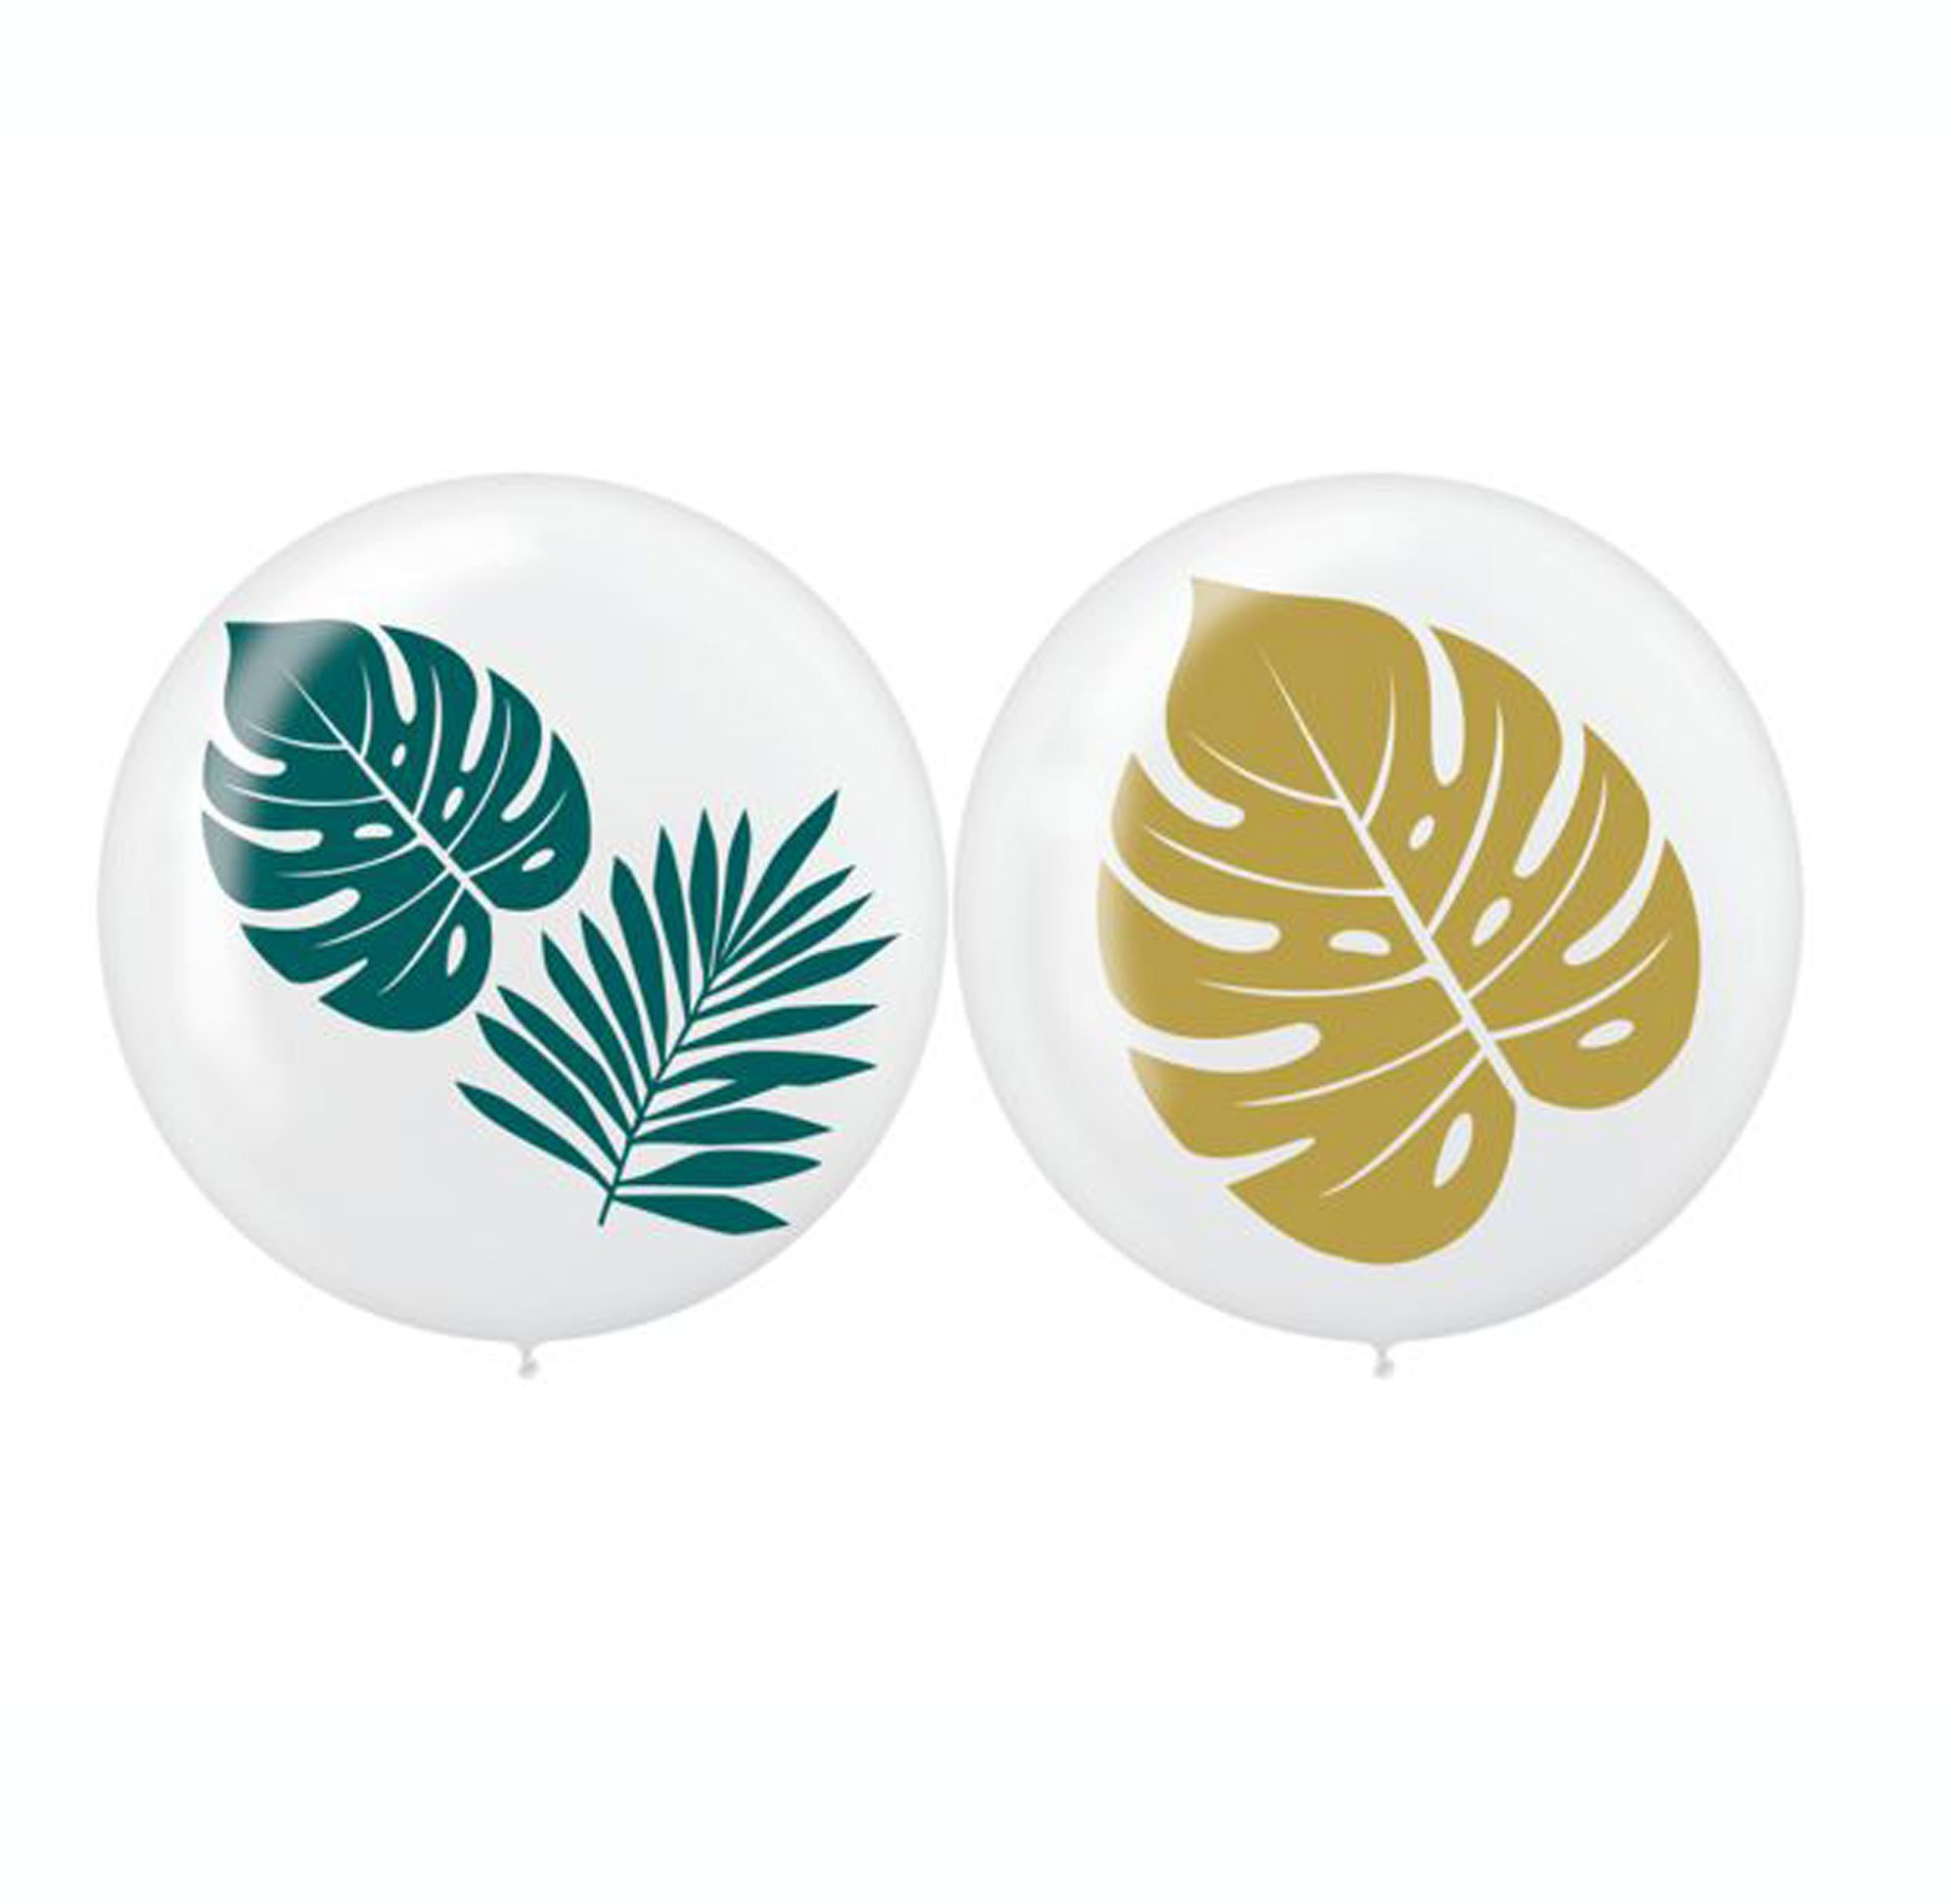 Key West 60cm Palm Leaves Latex Balloons